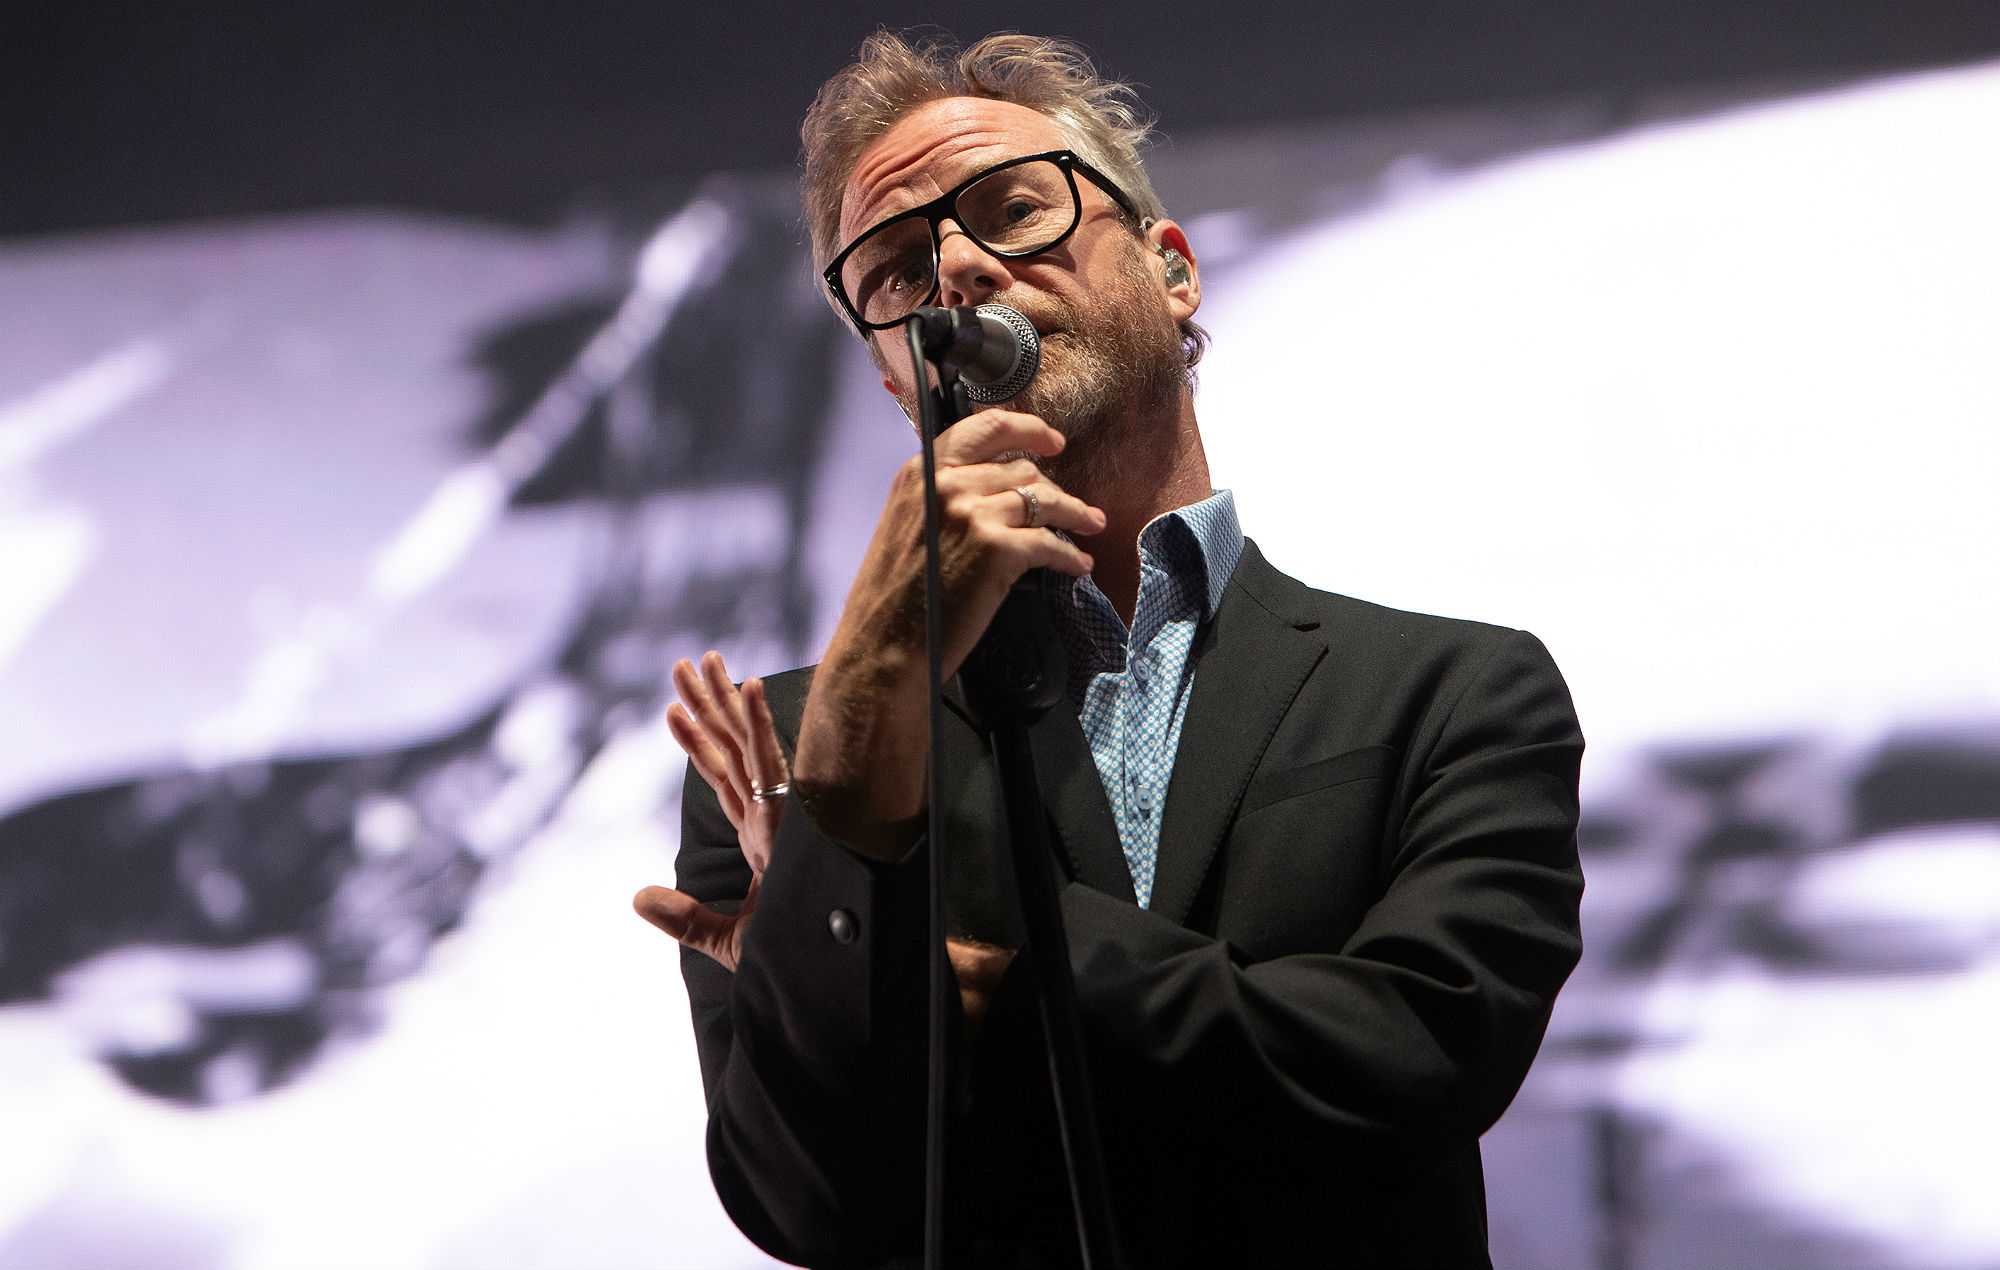 """The National's Matt Berninger hits out at Boris Johnson: """"Hopefully you have some politicians with character and backbone"""""""